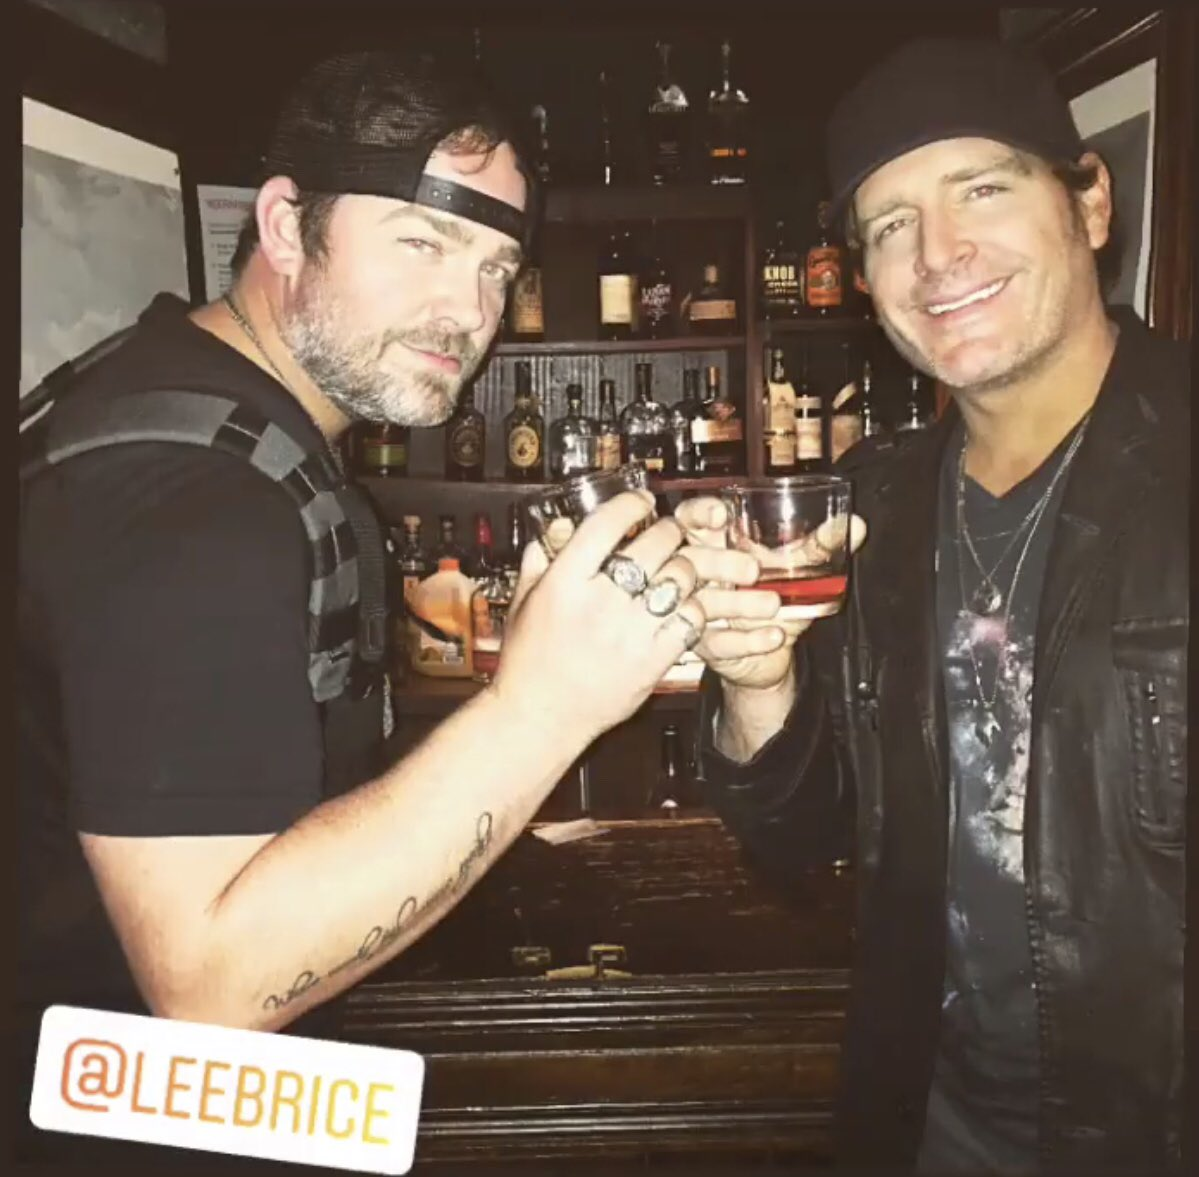 How @leebrice and I like to order our shots... #doubles #cheers #tbt